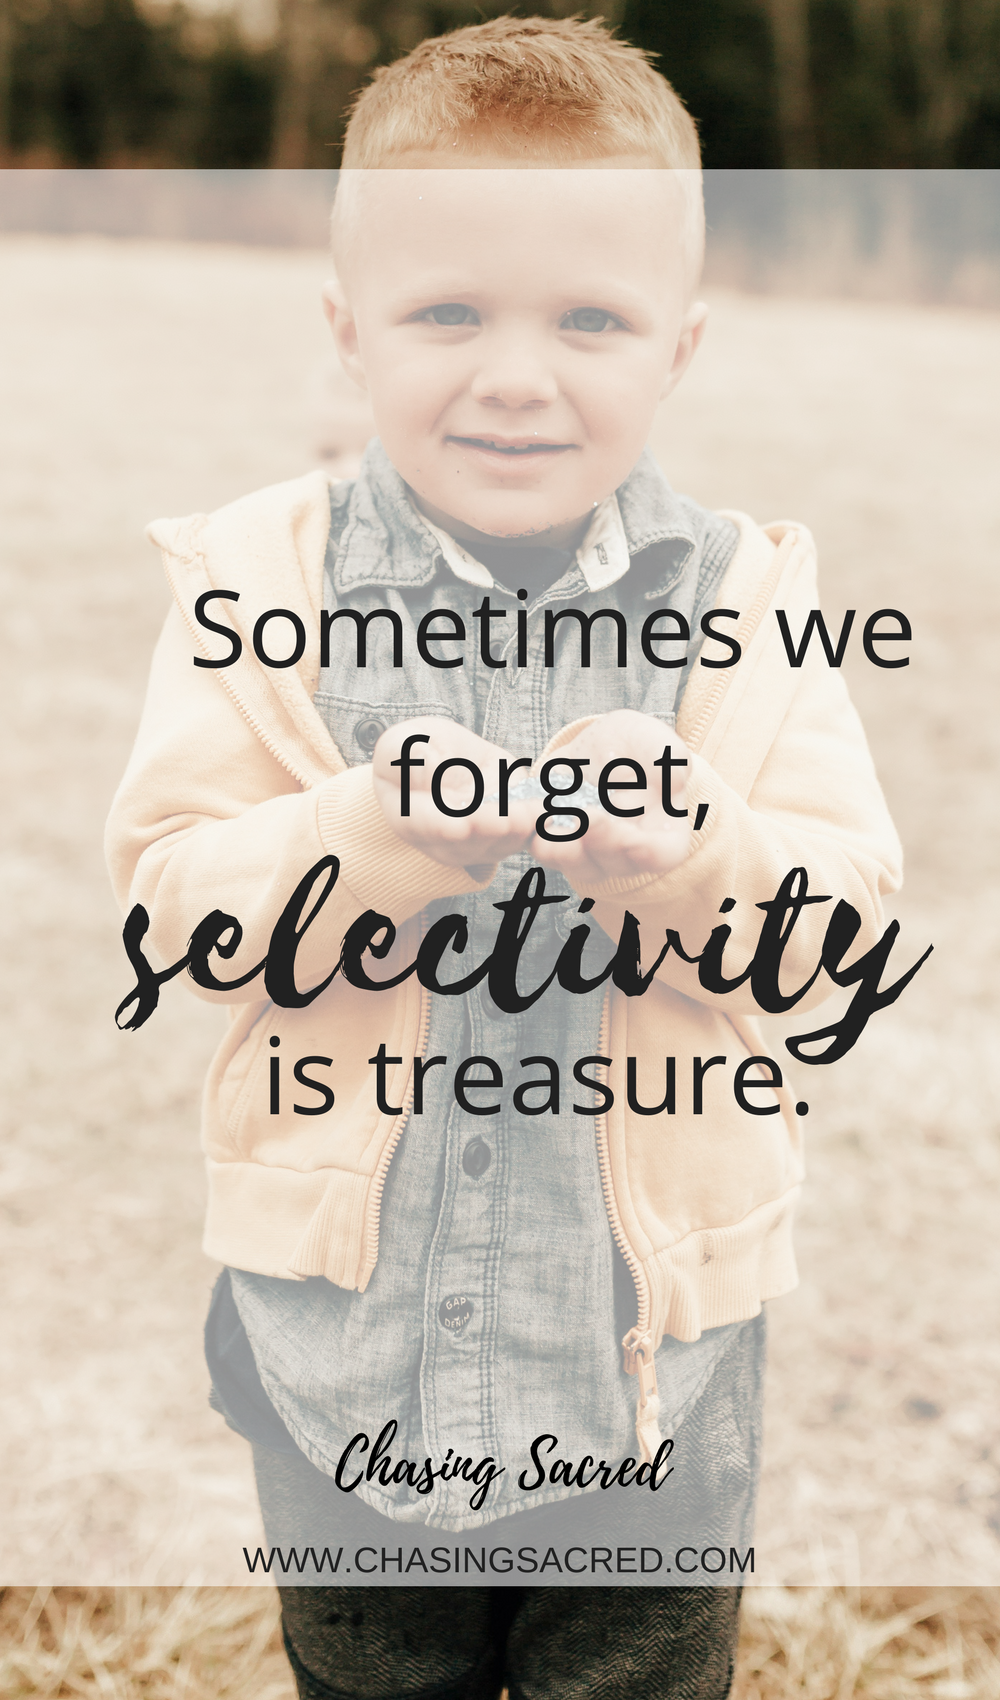 Sometimes we forget, selectivity is treasure | Chasing Sacred